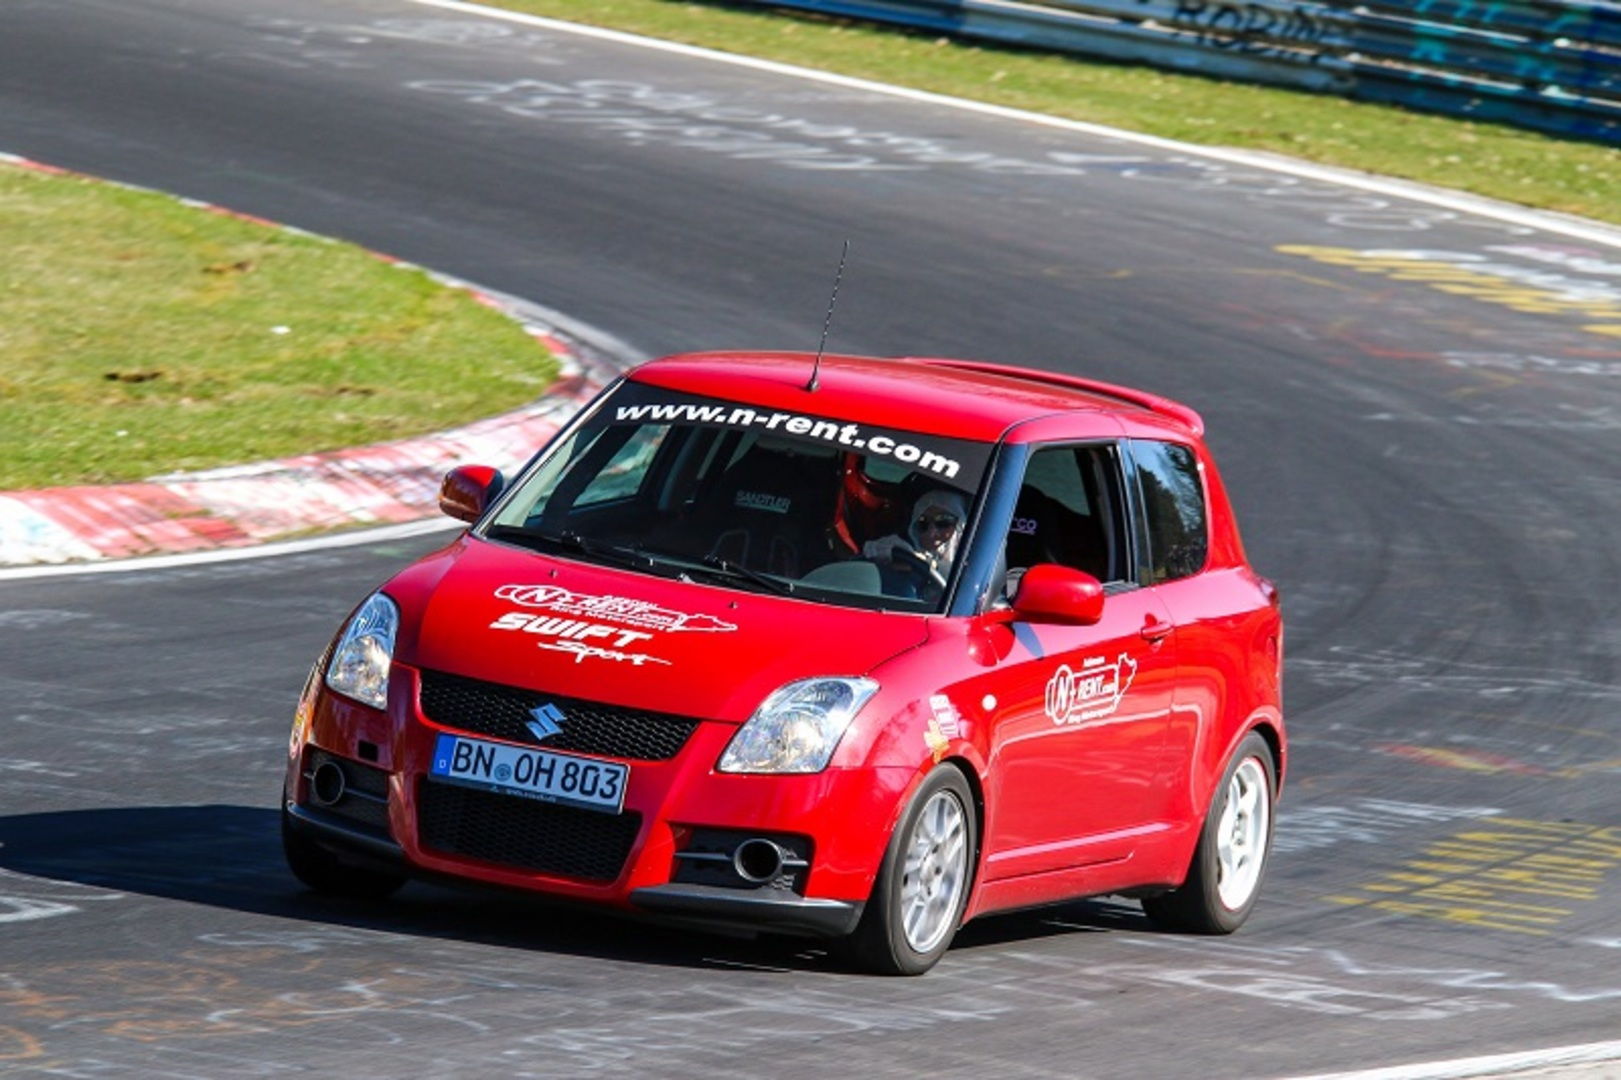 Suzuki swift nurburgring